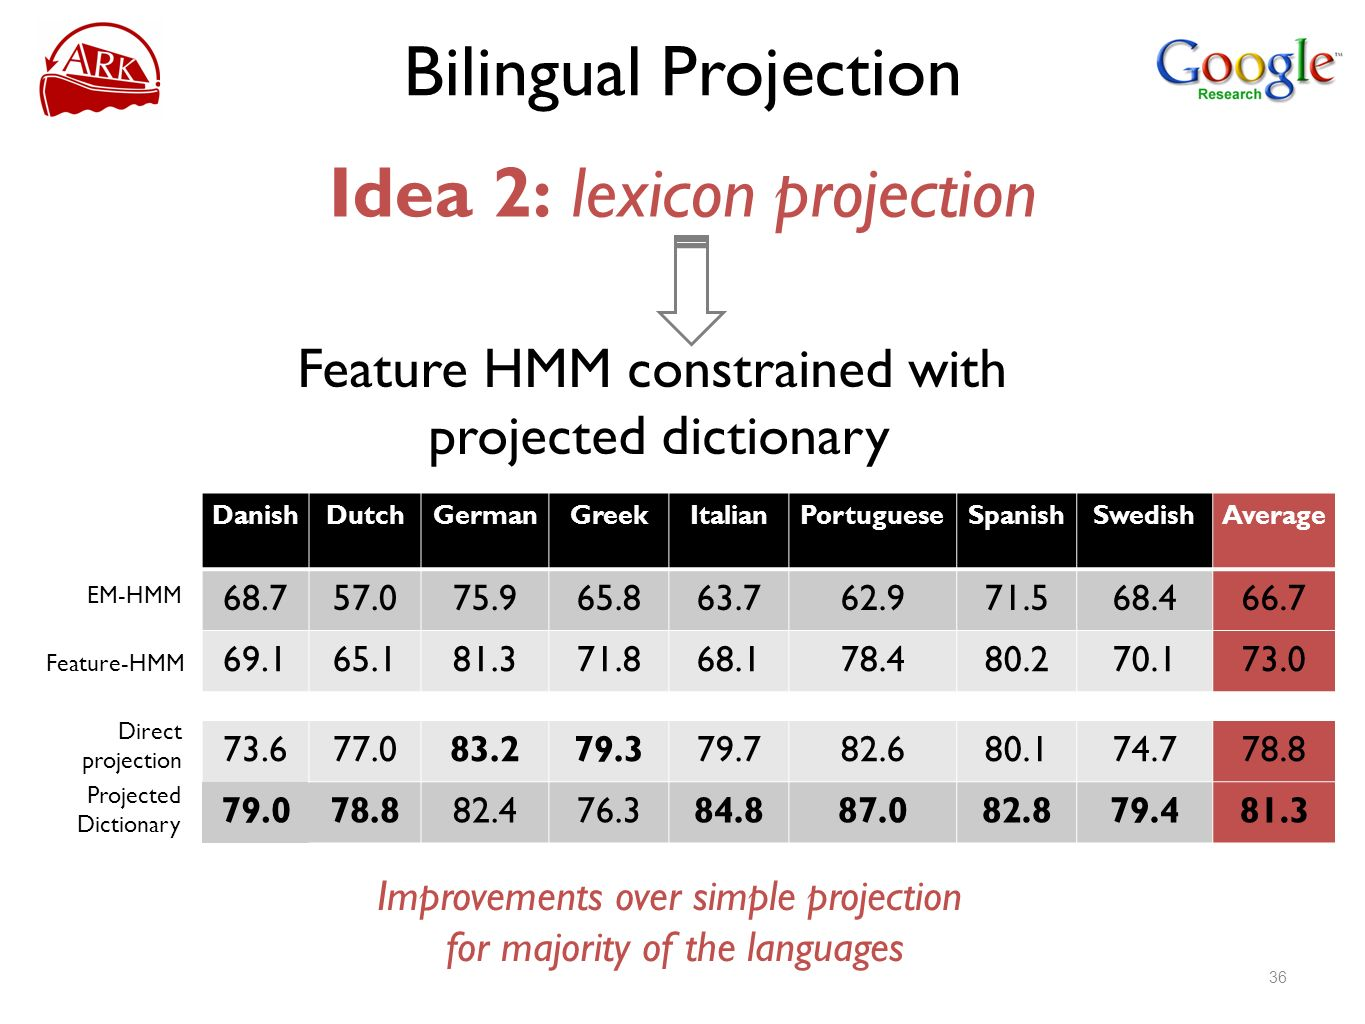 Bilingual Projection Idea 2: lexicon projection Feature HMM constrained with projected dictionary Improvements over simple projection for majority of the languages 36 DanishDutchGermanGreekItalianPortugueseSpanishSwedishAverage EM-HMM Direct projection Projected Dictionary Feature-HMM